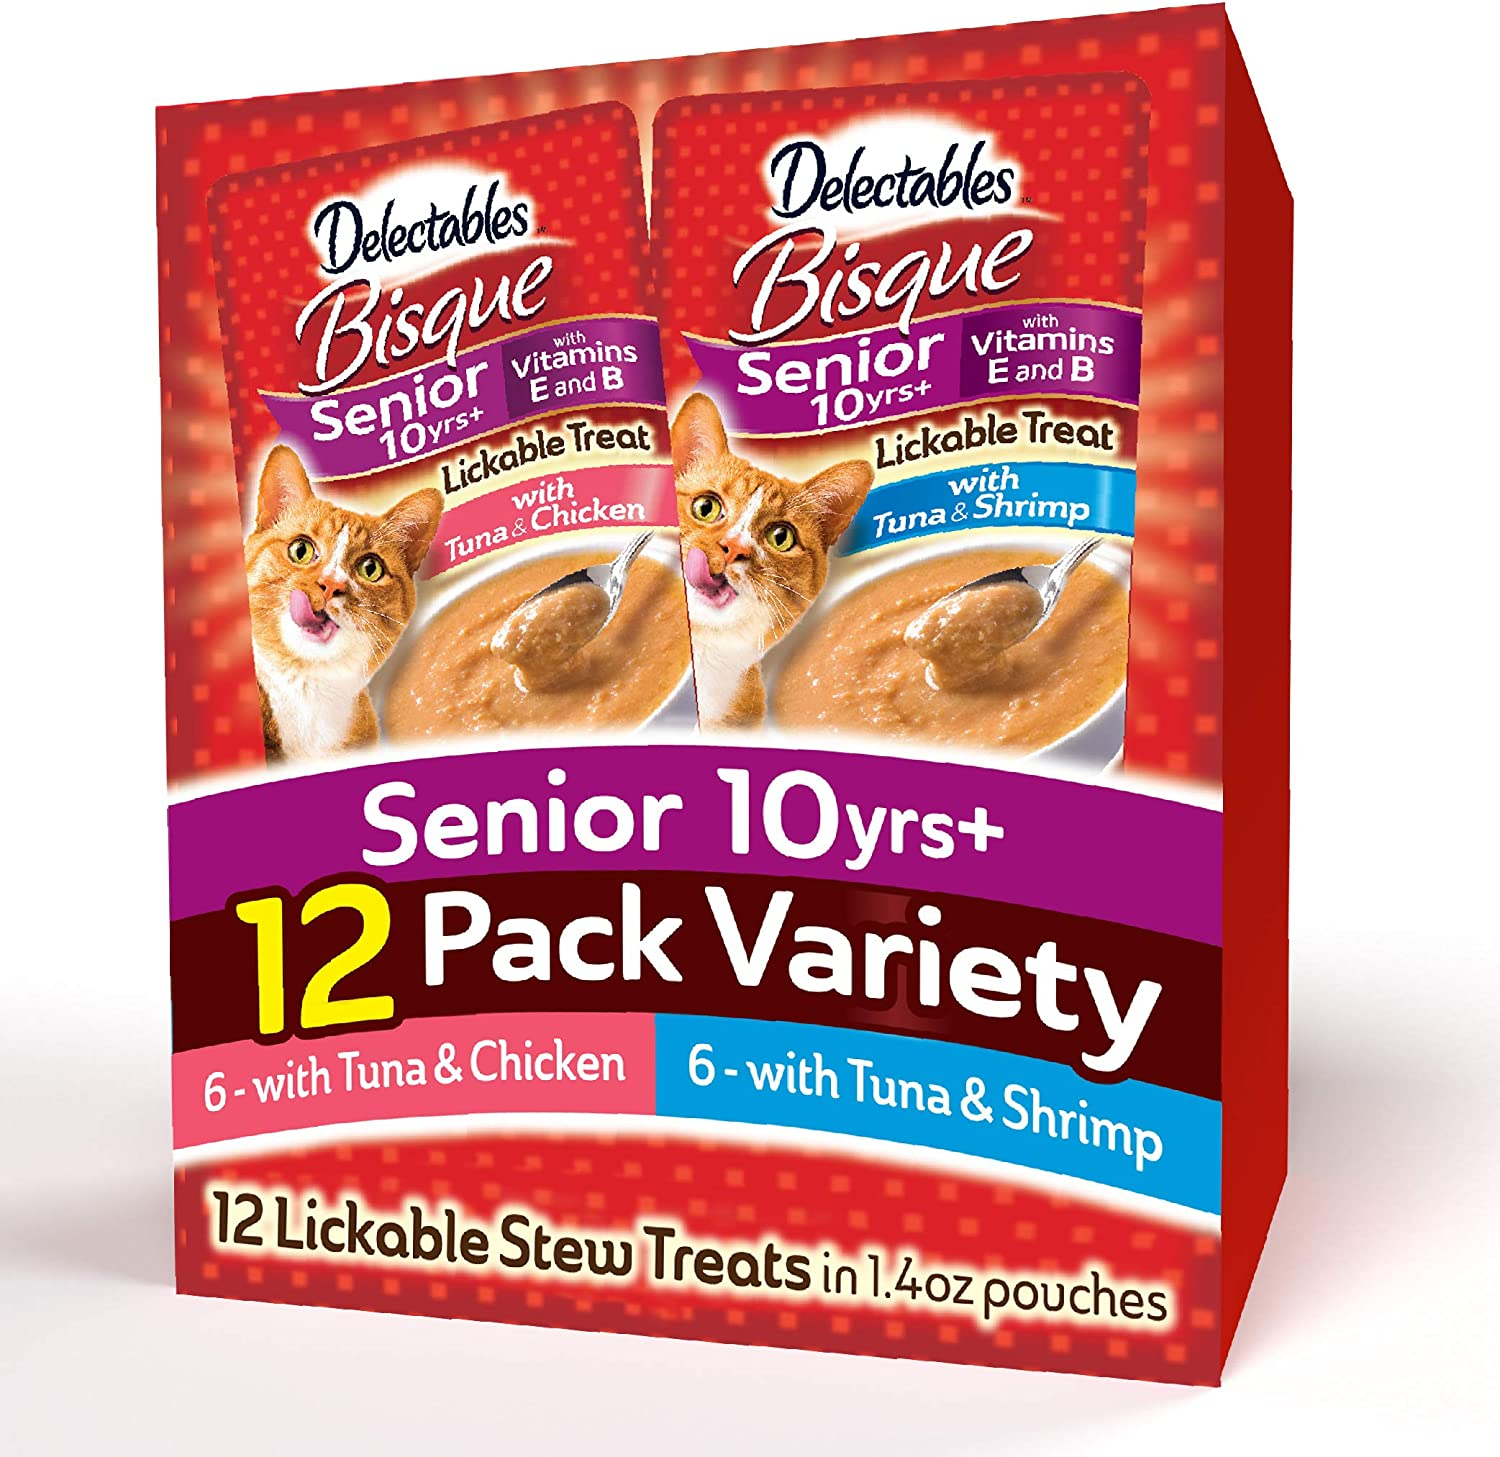 Delectables Bisque Senior Variety Pack Lickable Cat Treats, 12 Count